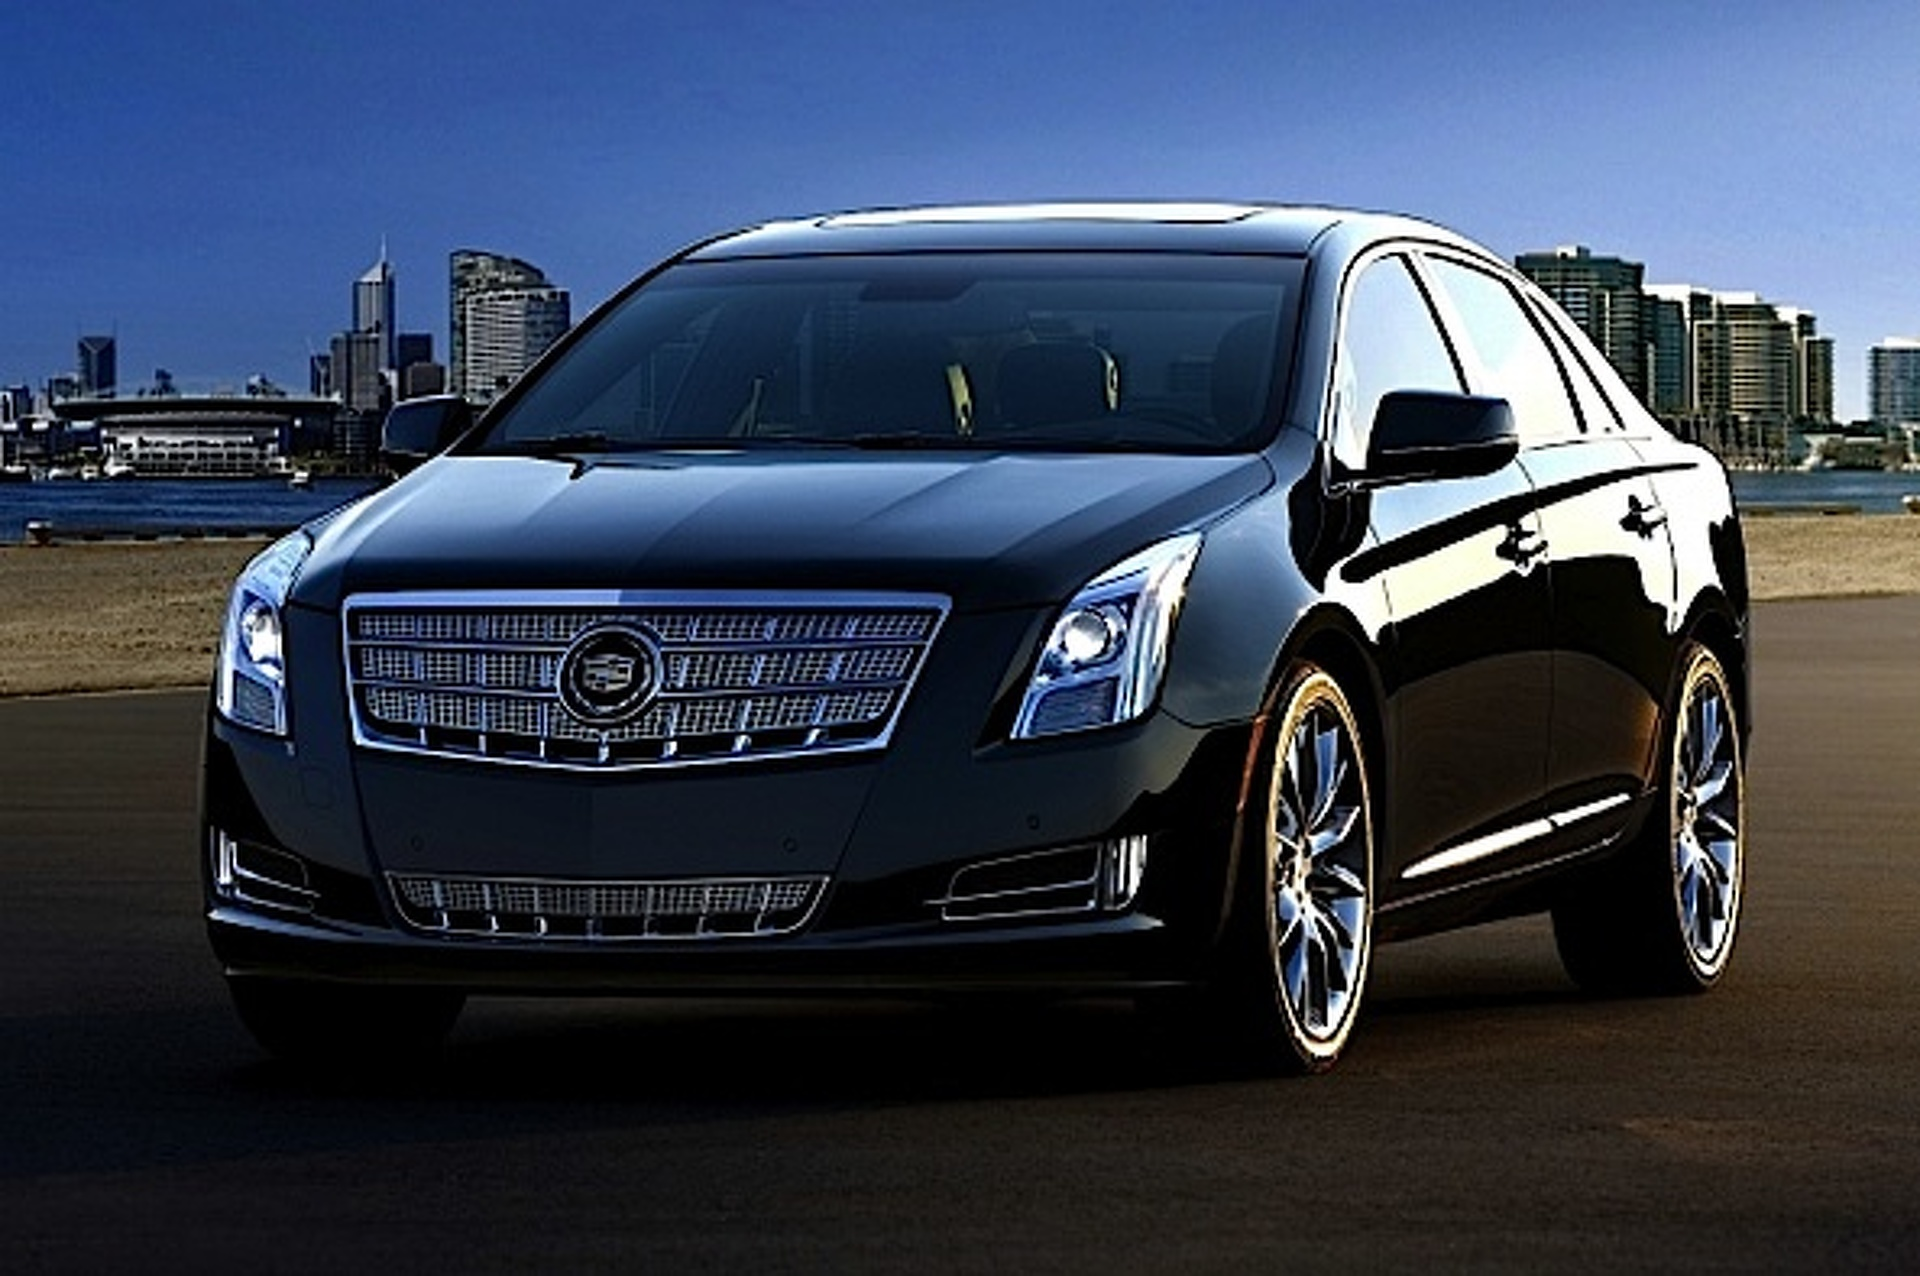 review why the cadillac xts ain 39 t your grandfather 39 s cadillac. Black Bedroom Furniture Sets. Home Design Ideas